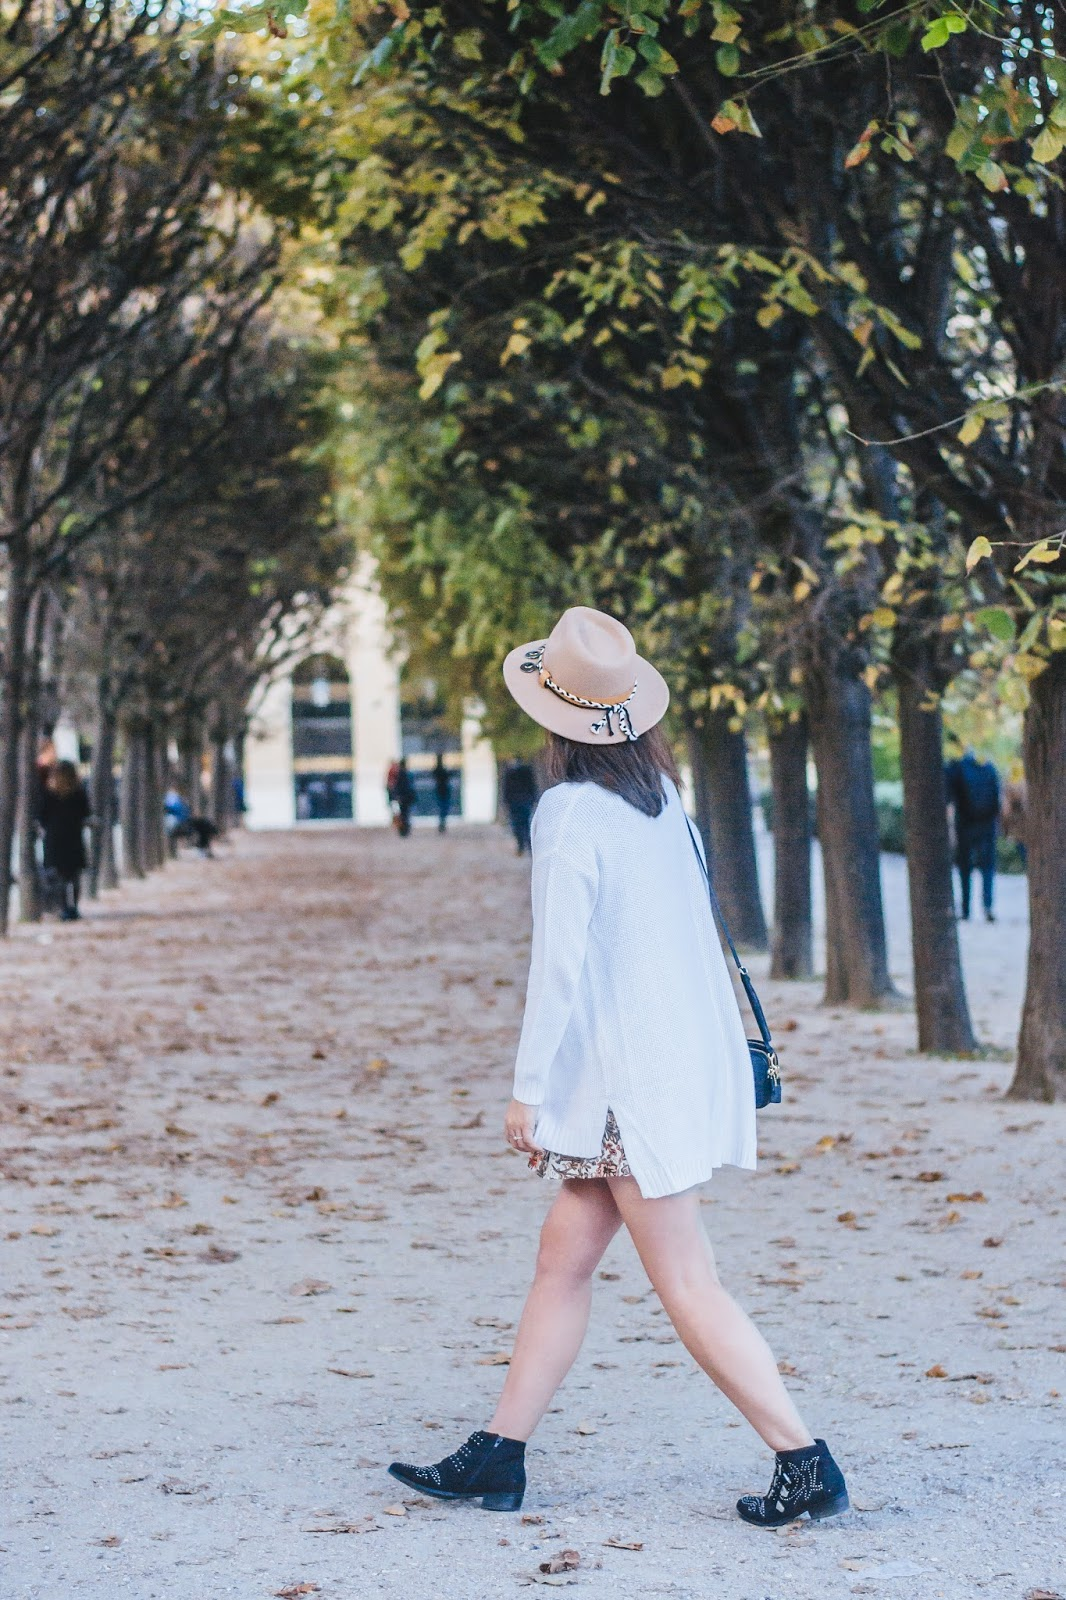 parisianfashionblogger-fashion-streetstyle-look-mode-meetmeinparee-cute-autumnstyling